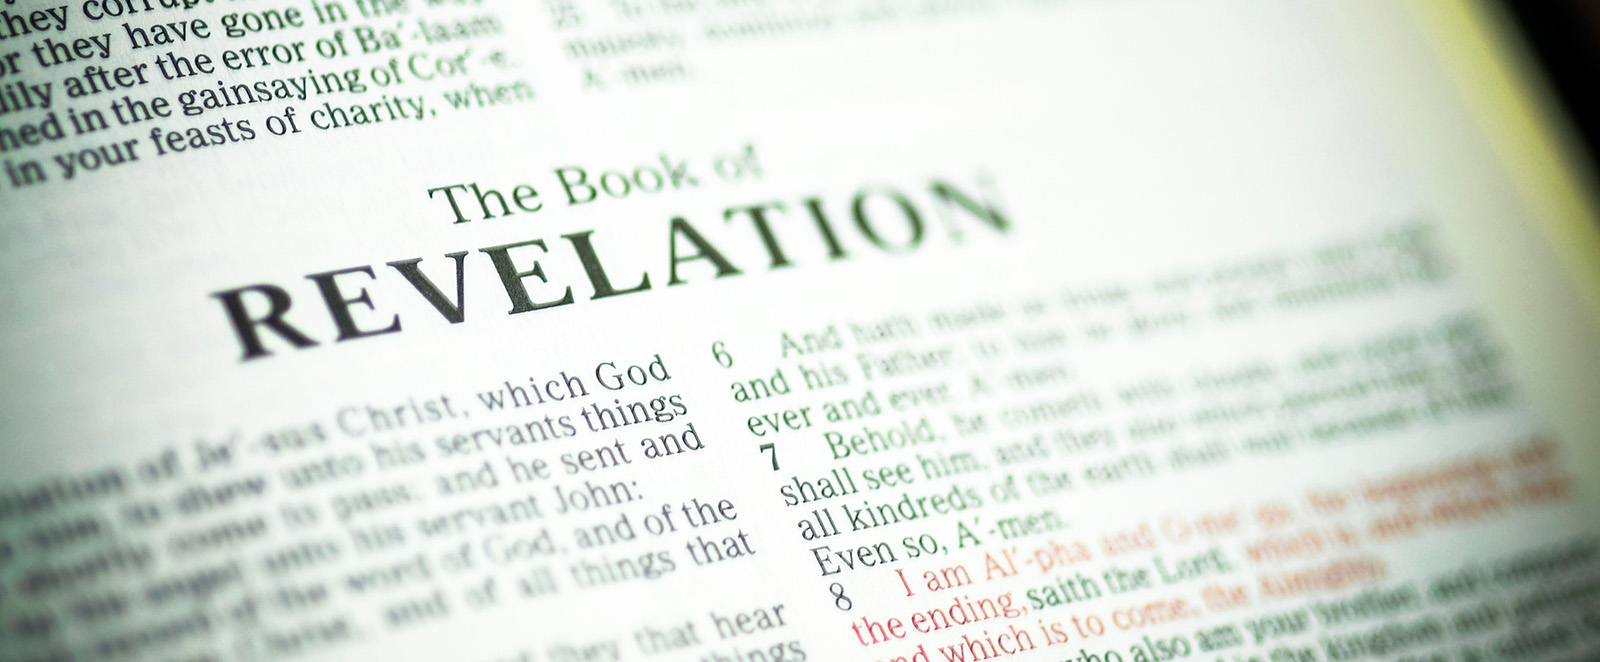 webinar-book-of-revelation.jpg